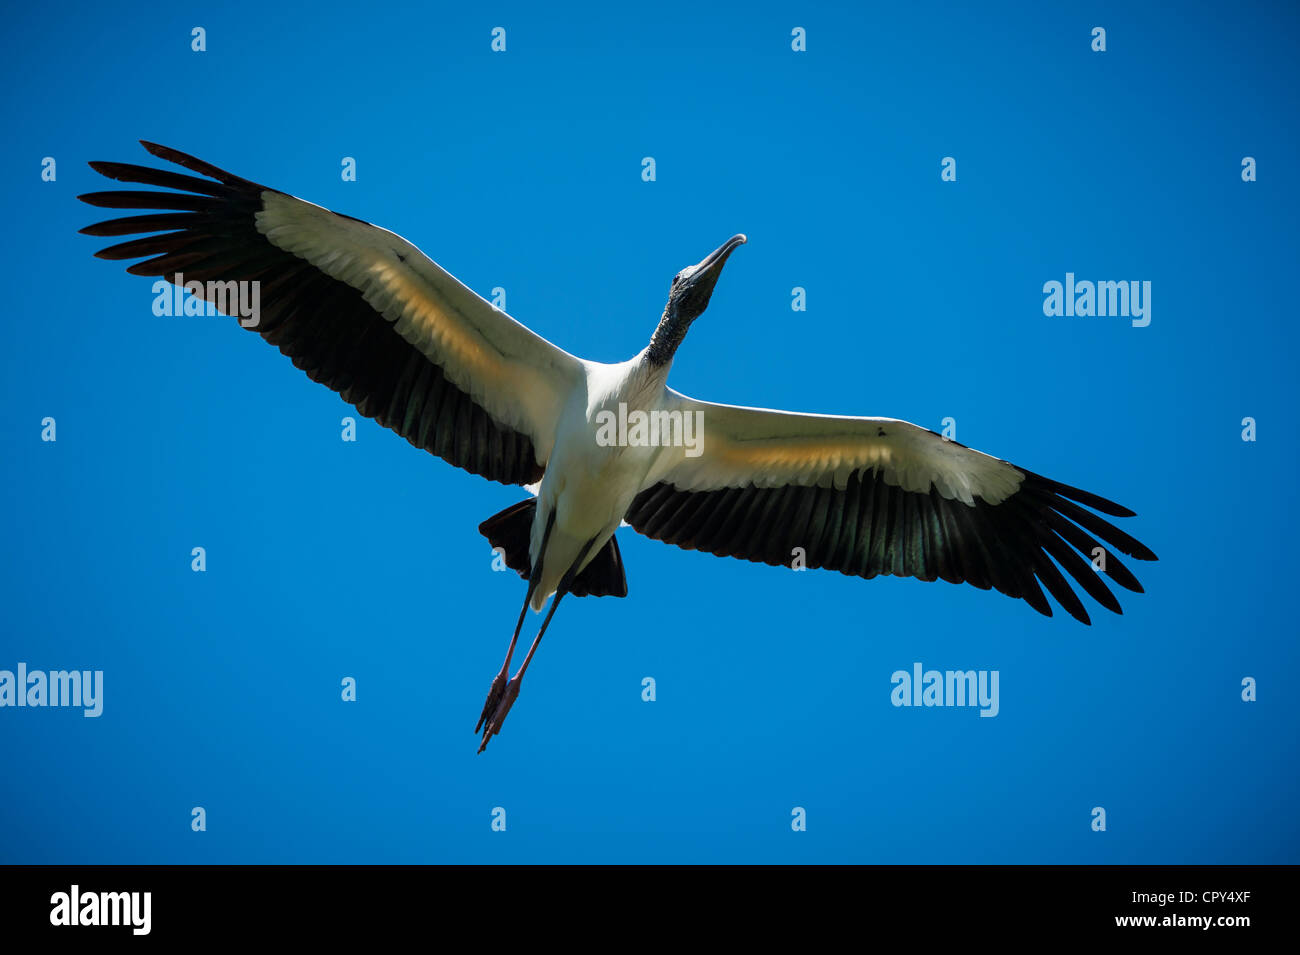 Wood Stork Flying with wings open view from below - Stock Image